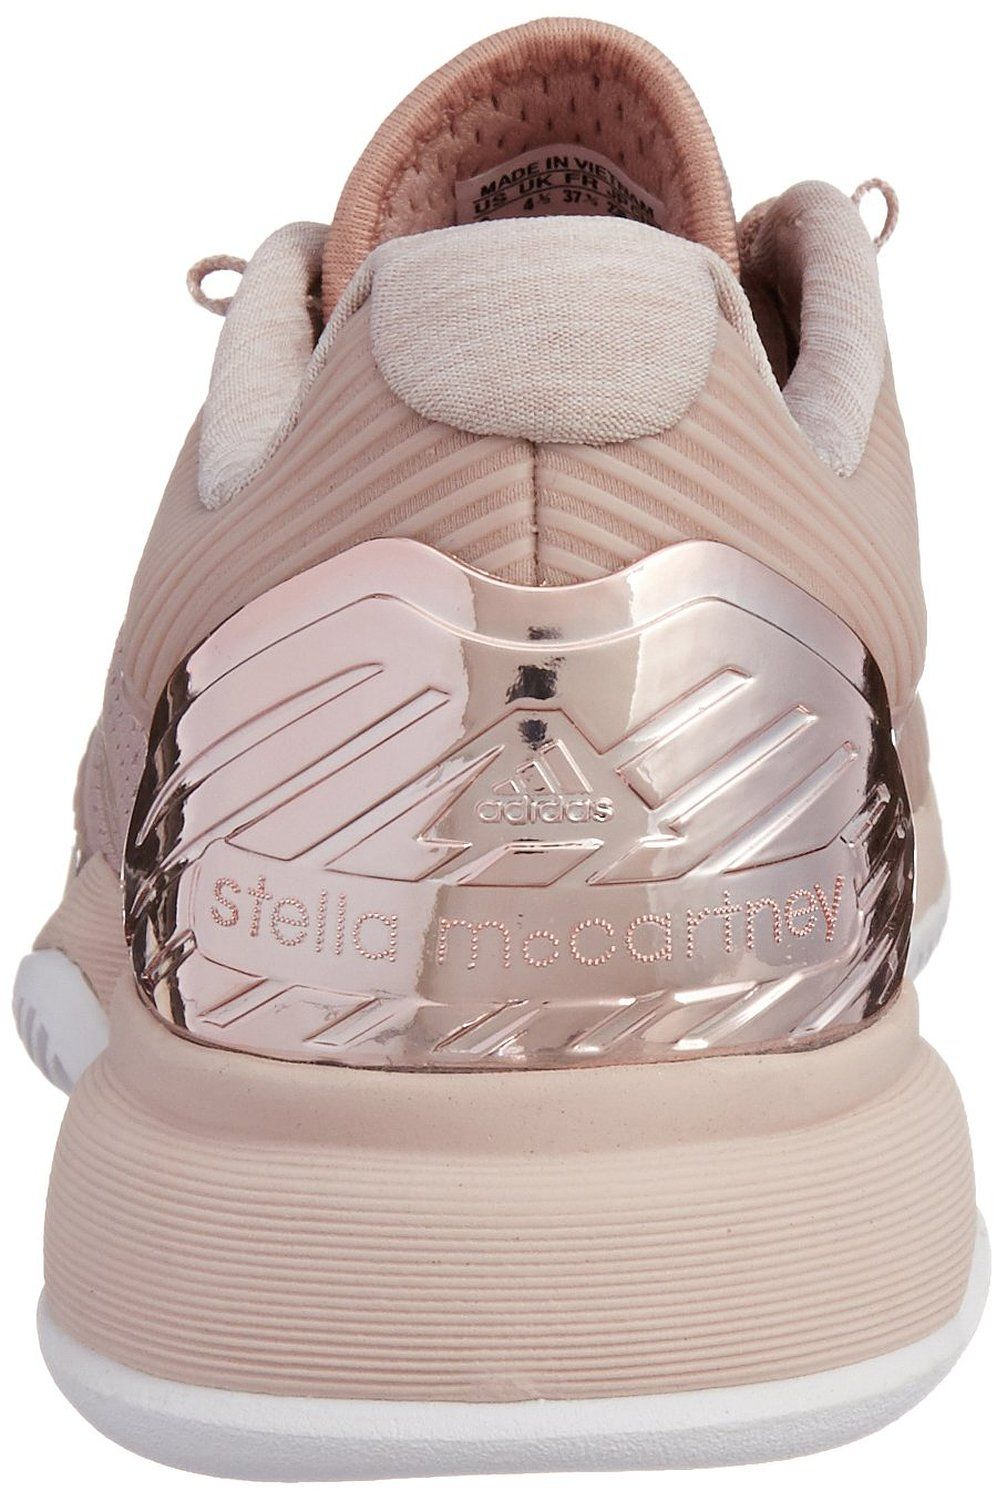 75fee78fdaf593 adidas Stella McCartney Barricade Ladies Tennis Shoe